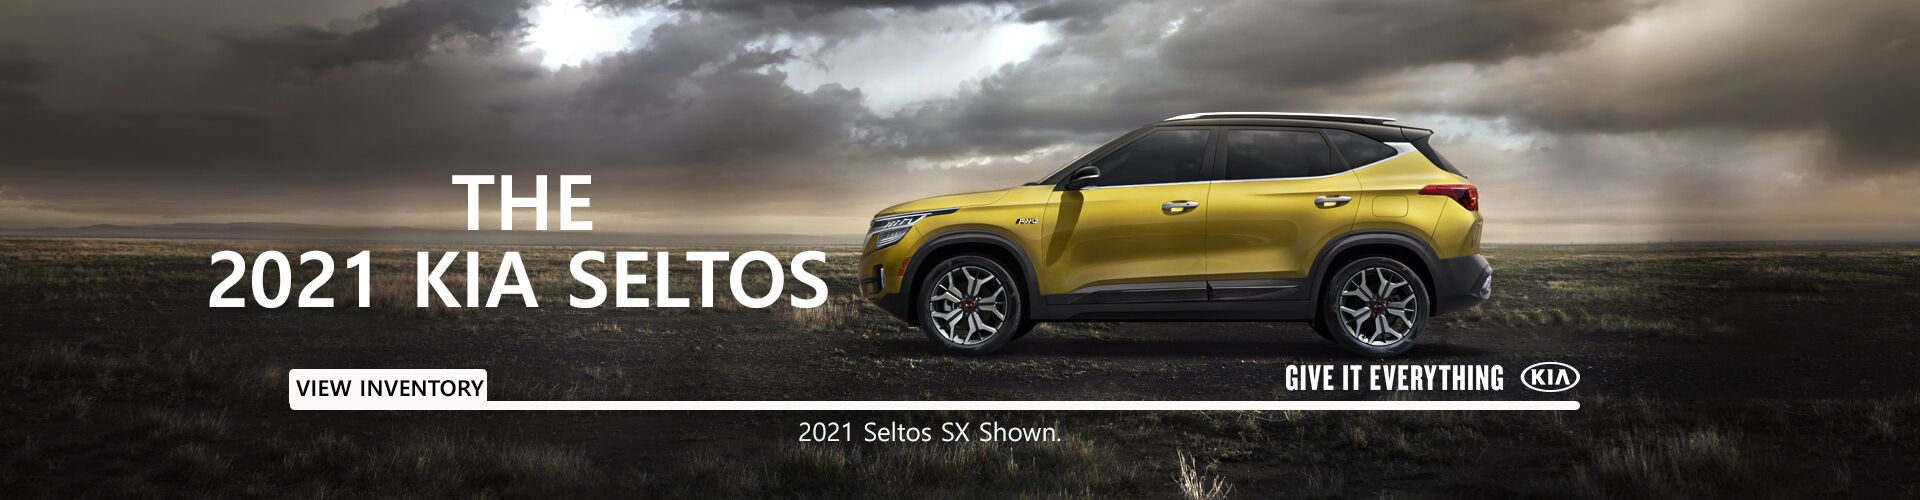 Kia Seltos No Offer 202037